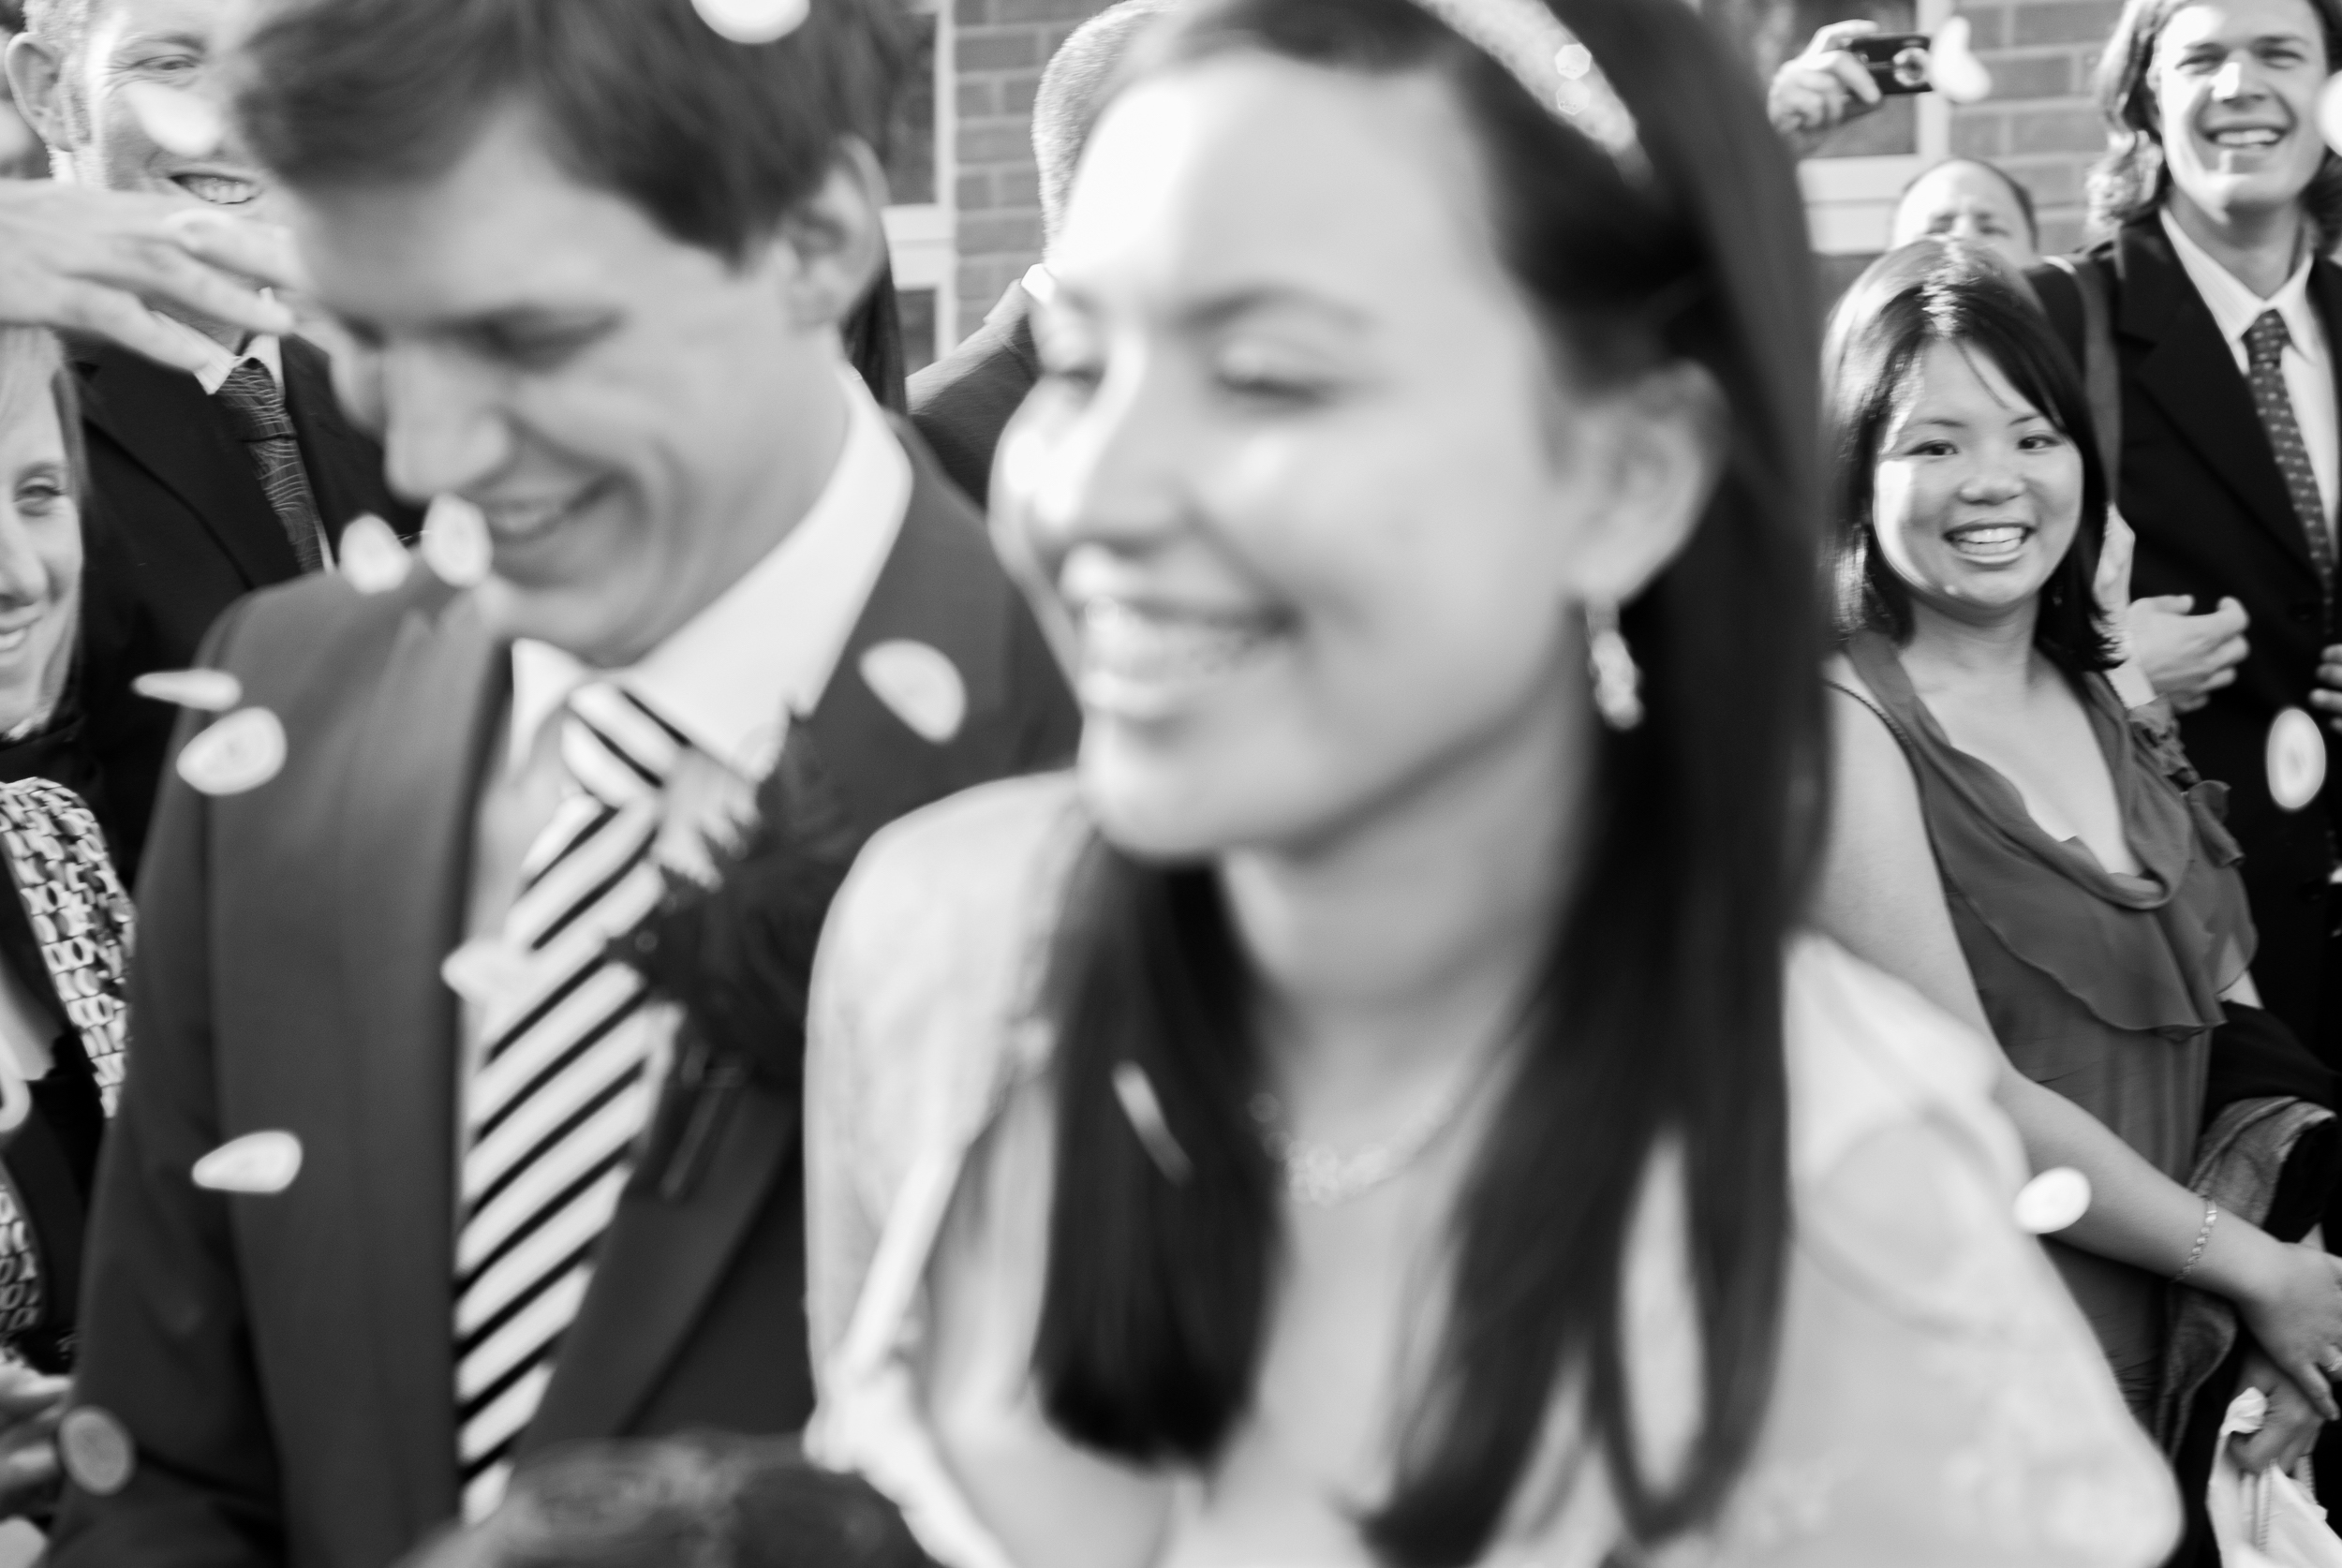 WEDDING-REPORTAGE-PHOTOGRAPHY-LONDON-COOL-COUPLE.jpg